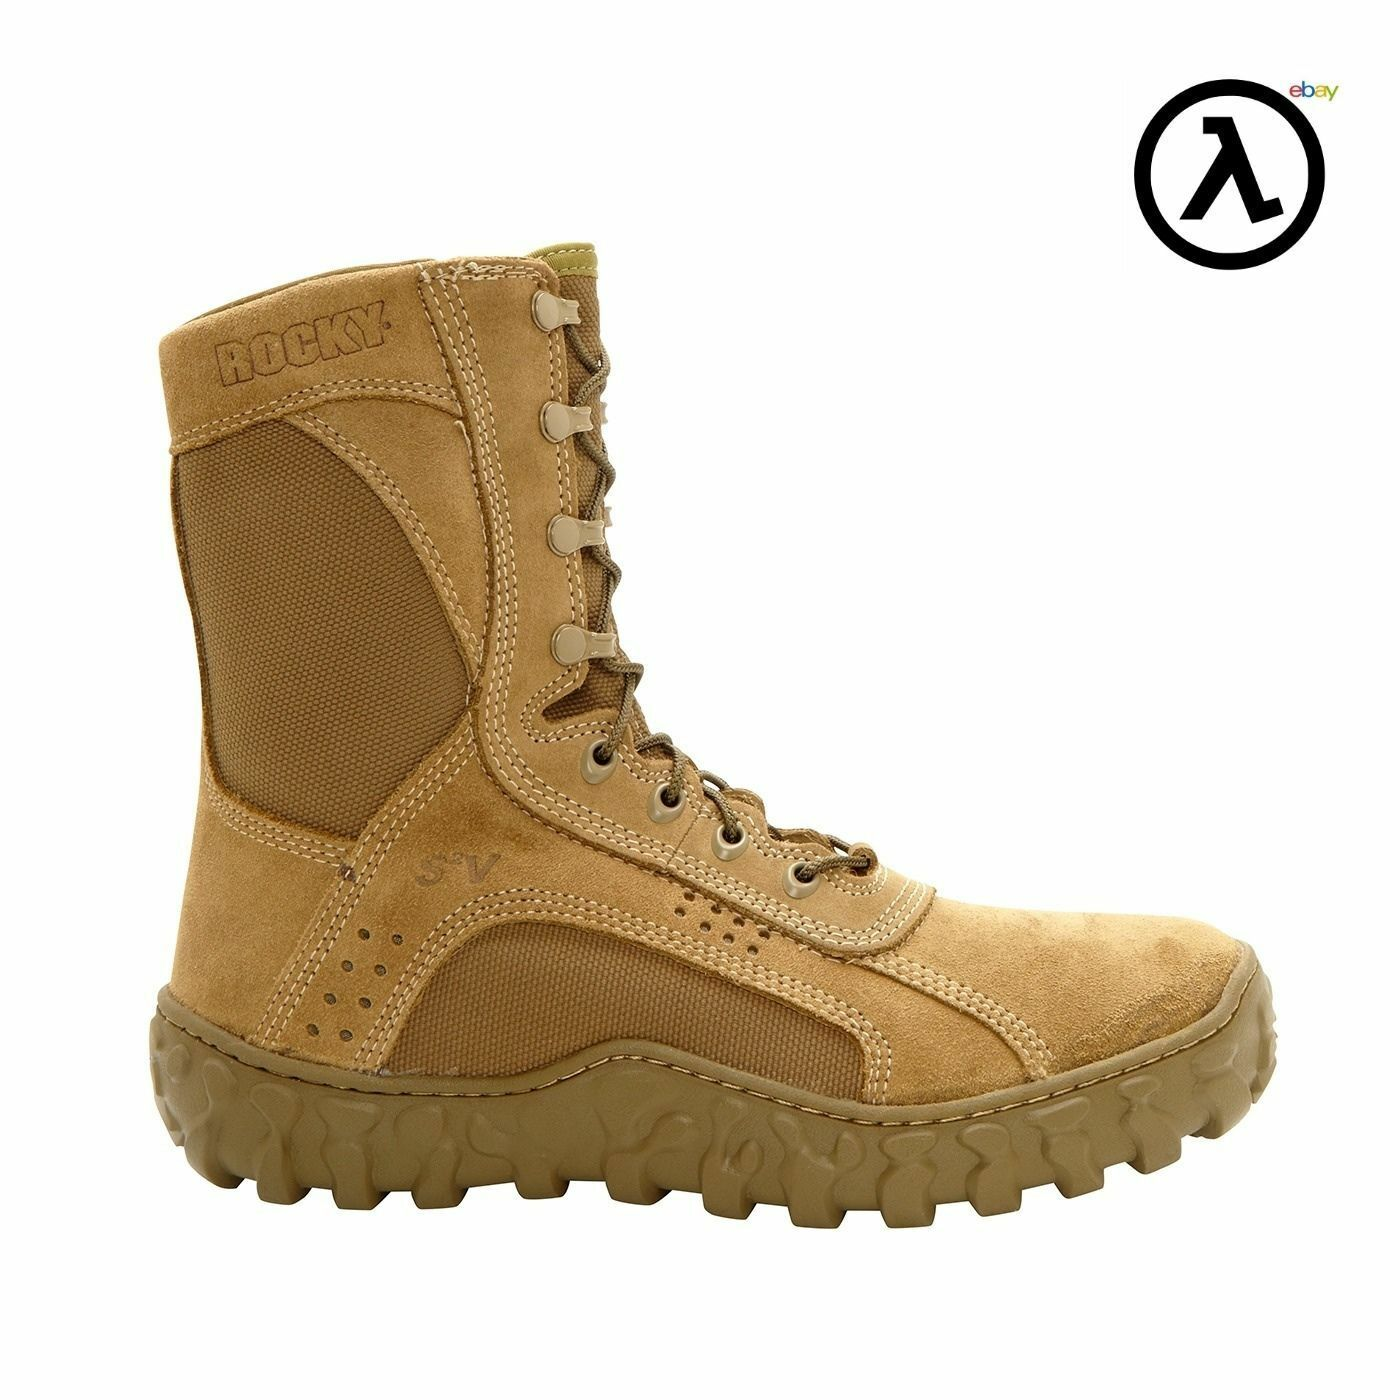 ROCKY S2V STEEL TOE MILITARY MILITARY MILITARY BOOTS / COYOTE FQ0006104 * ALL SIZES - NEW 74a7bb